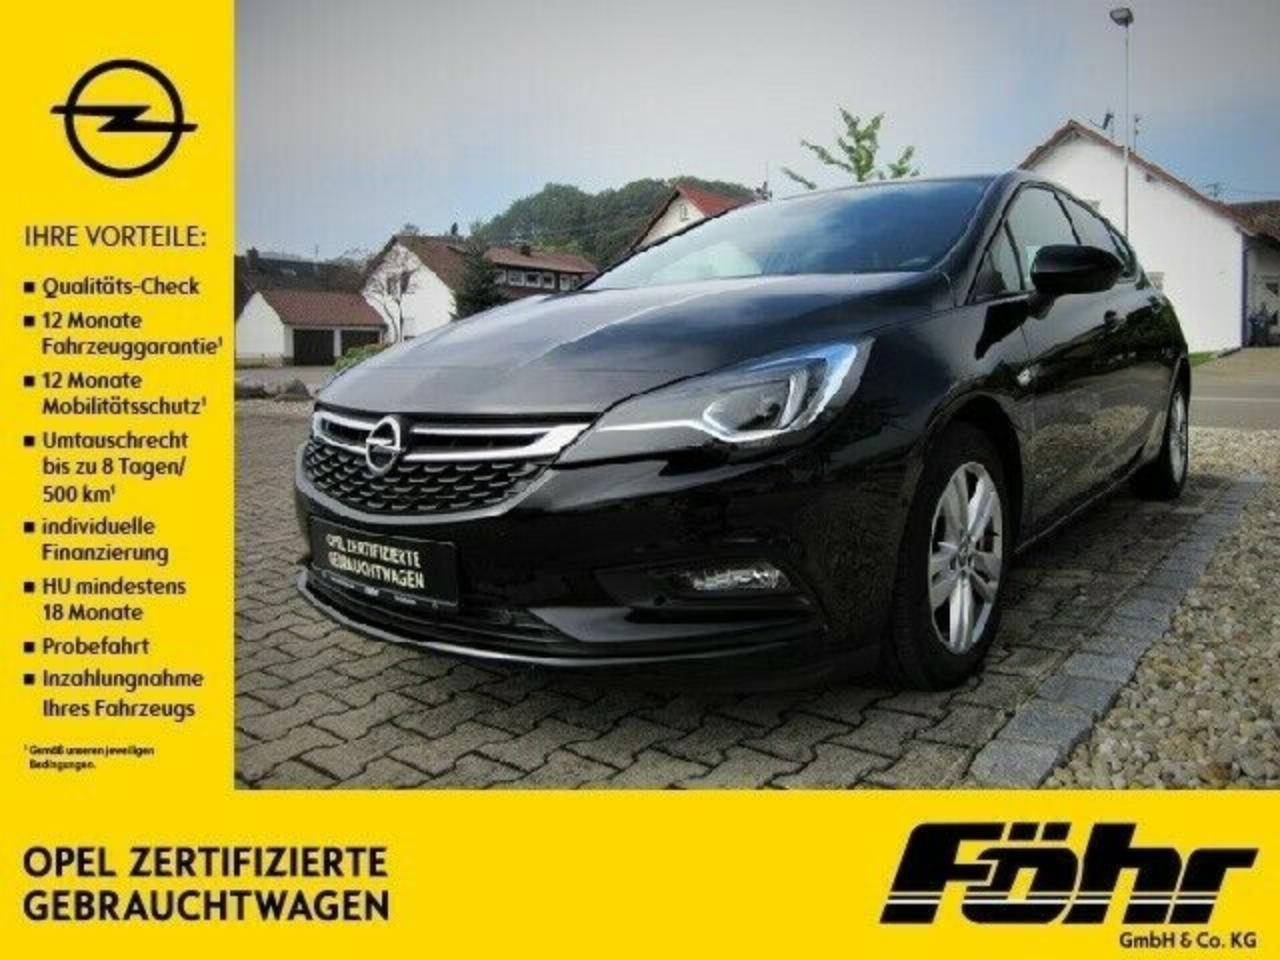 Opel Astra 1.4 Turbo 150 PS 6 MT ACTIVE